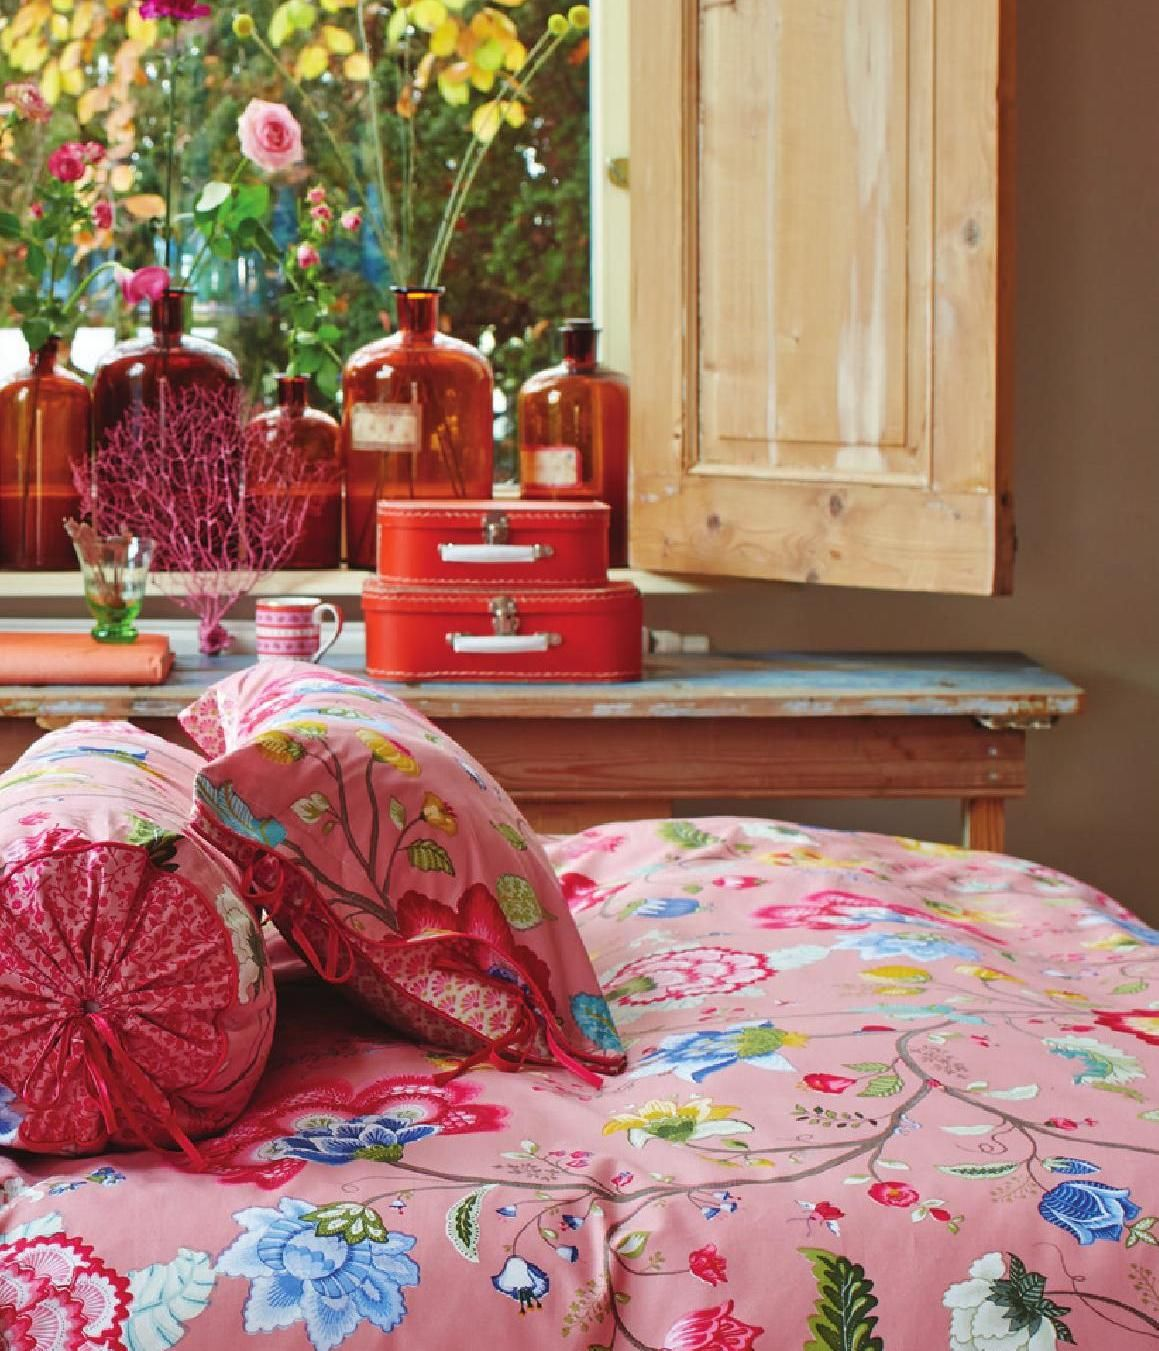 Bedding -- Bettwäsche -- #ClippedOnIssuu from PIP Studio Bed & Bath collection Spring Summer 2015